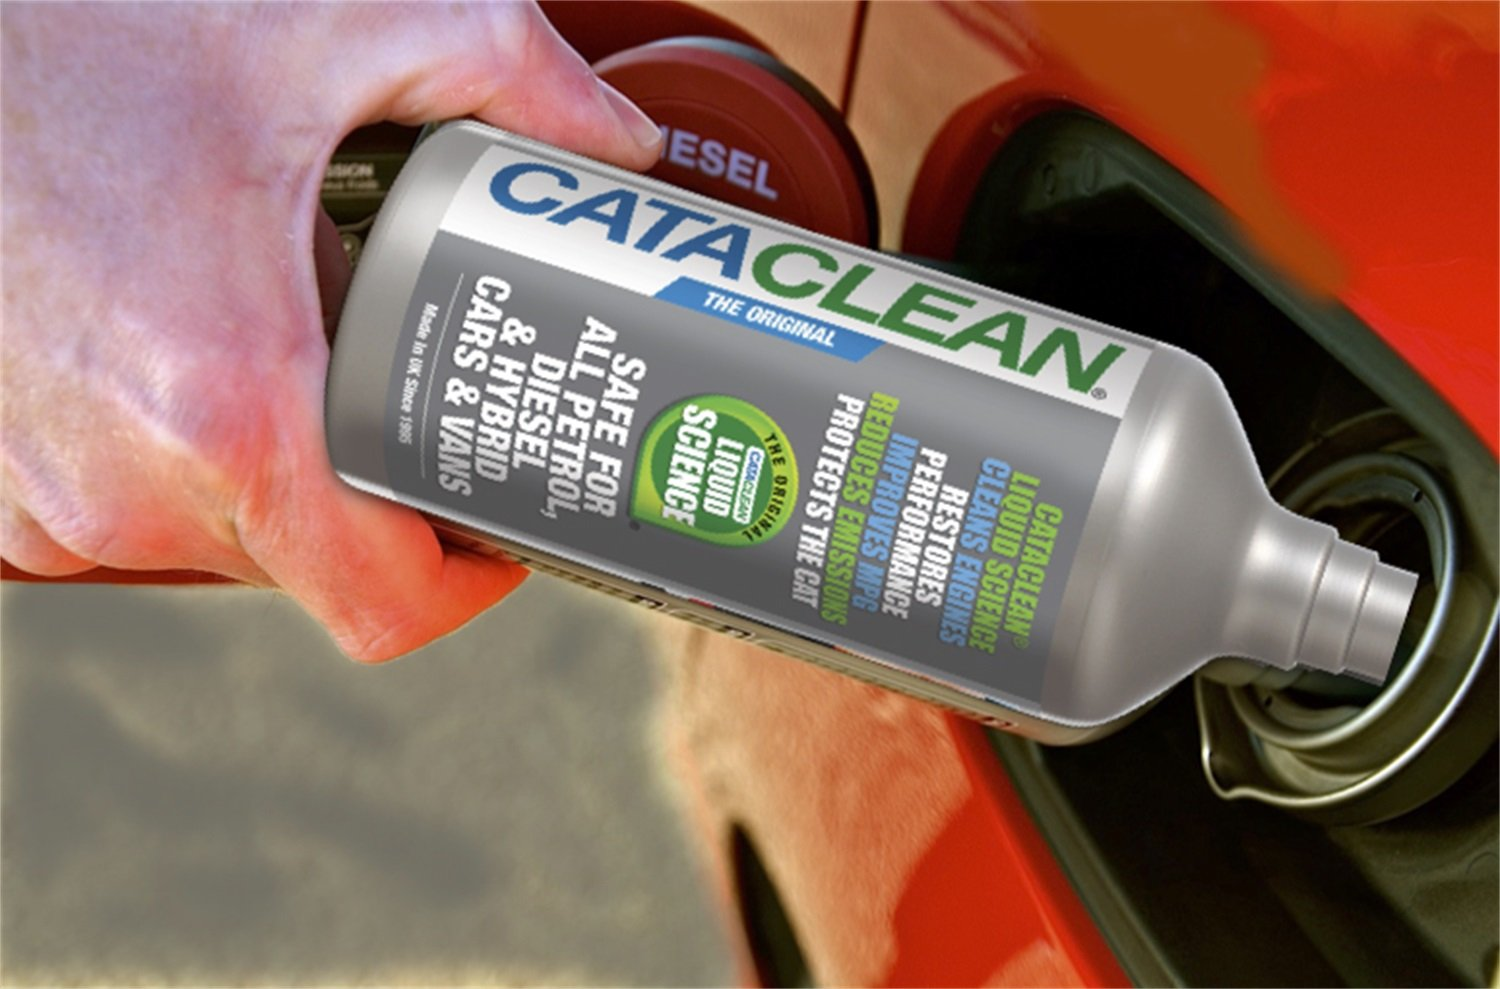 Cataclean 120009CAT Cataclean Fuel And Exhaust System Cleaner For Truck/Fleet/Industrial Applications Safe For Gas/Diesel/Hybrid Vehicles 5 Liters Cataclean Fuel And Exhaust System Cleaner